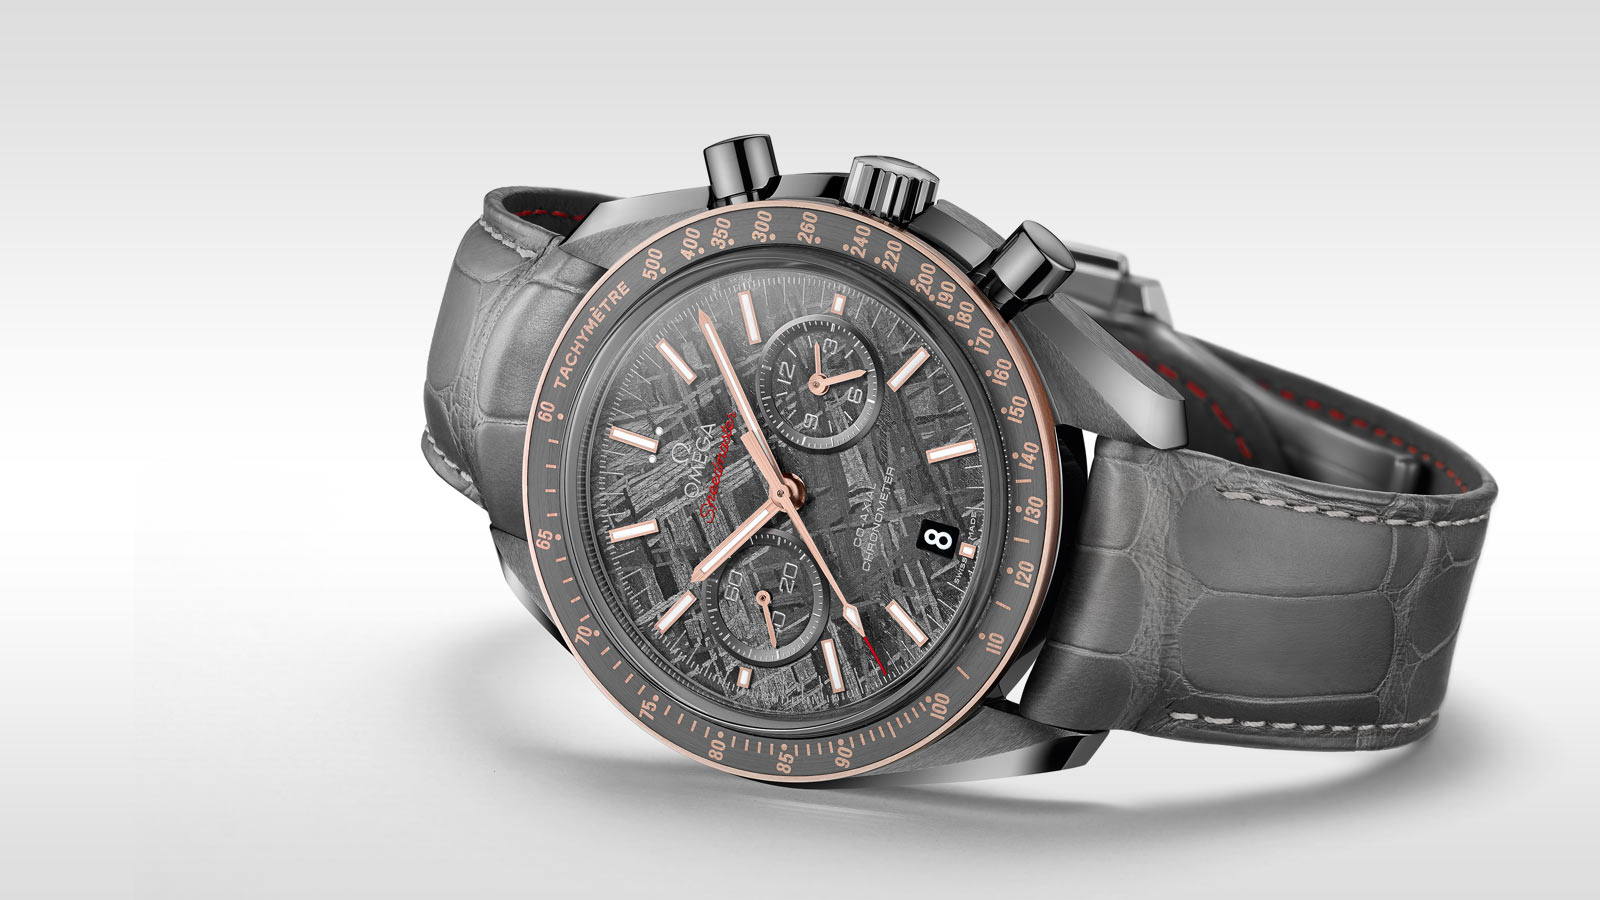 Speedmaster ムーンウォッチ Moonwatch Omega Co‑Axial Chronograph 44.25 mm - 311.63.44.51.99.001 - ビュー 2